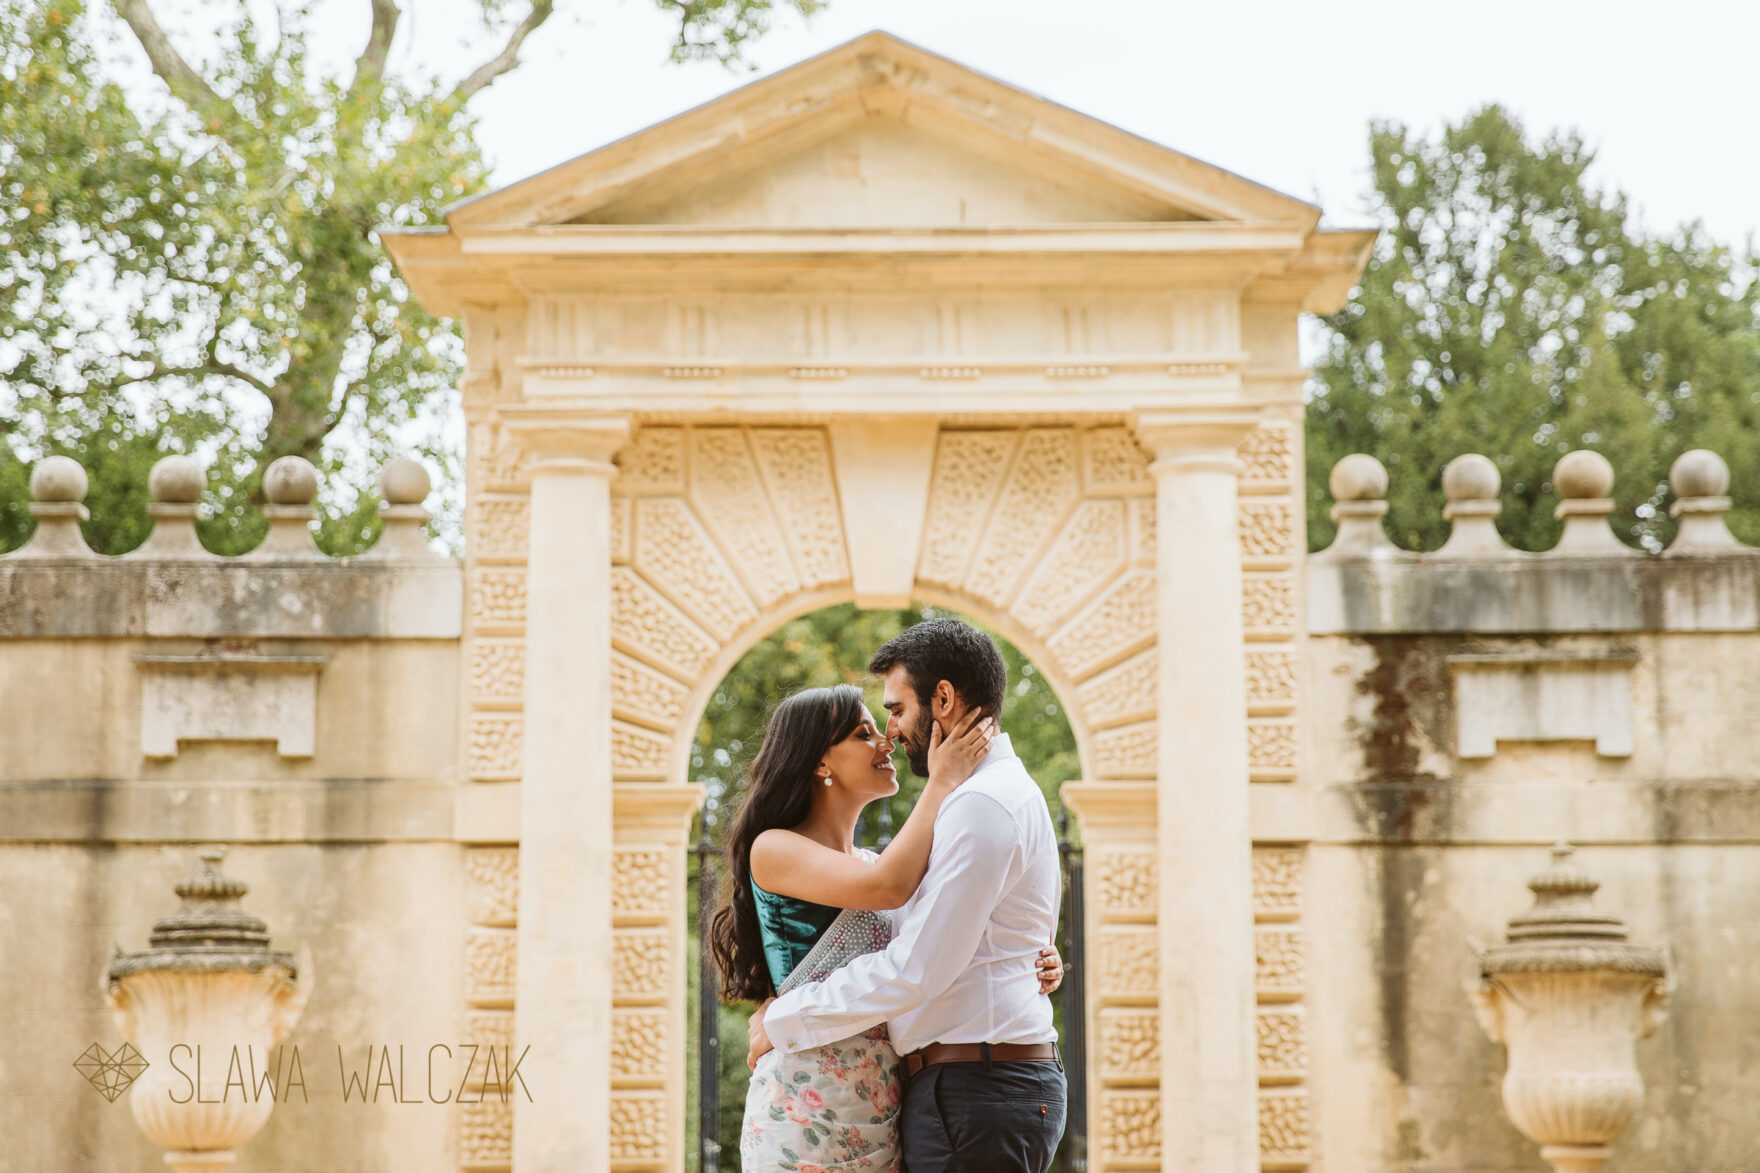 Natural and romantic engagement photo shoot Chiswick House Asian couple embrace each other romantically